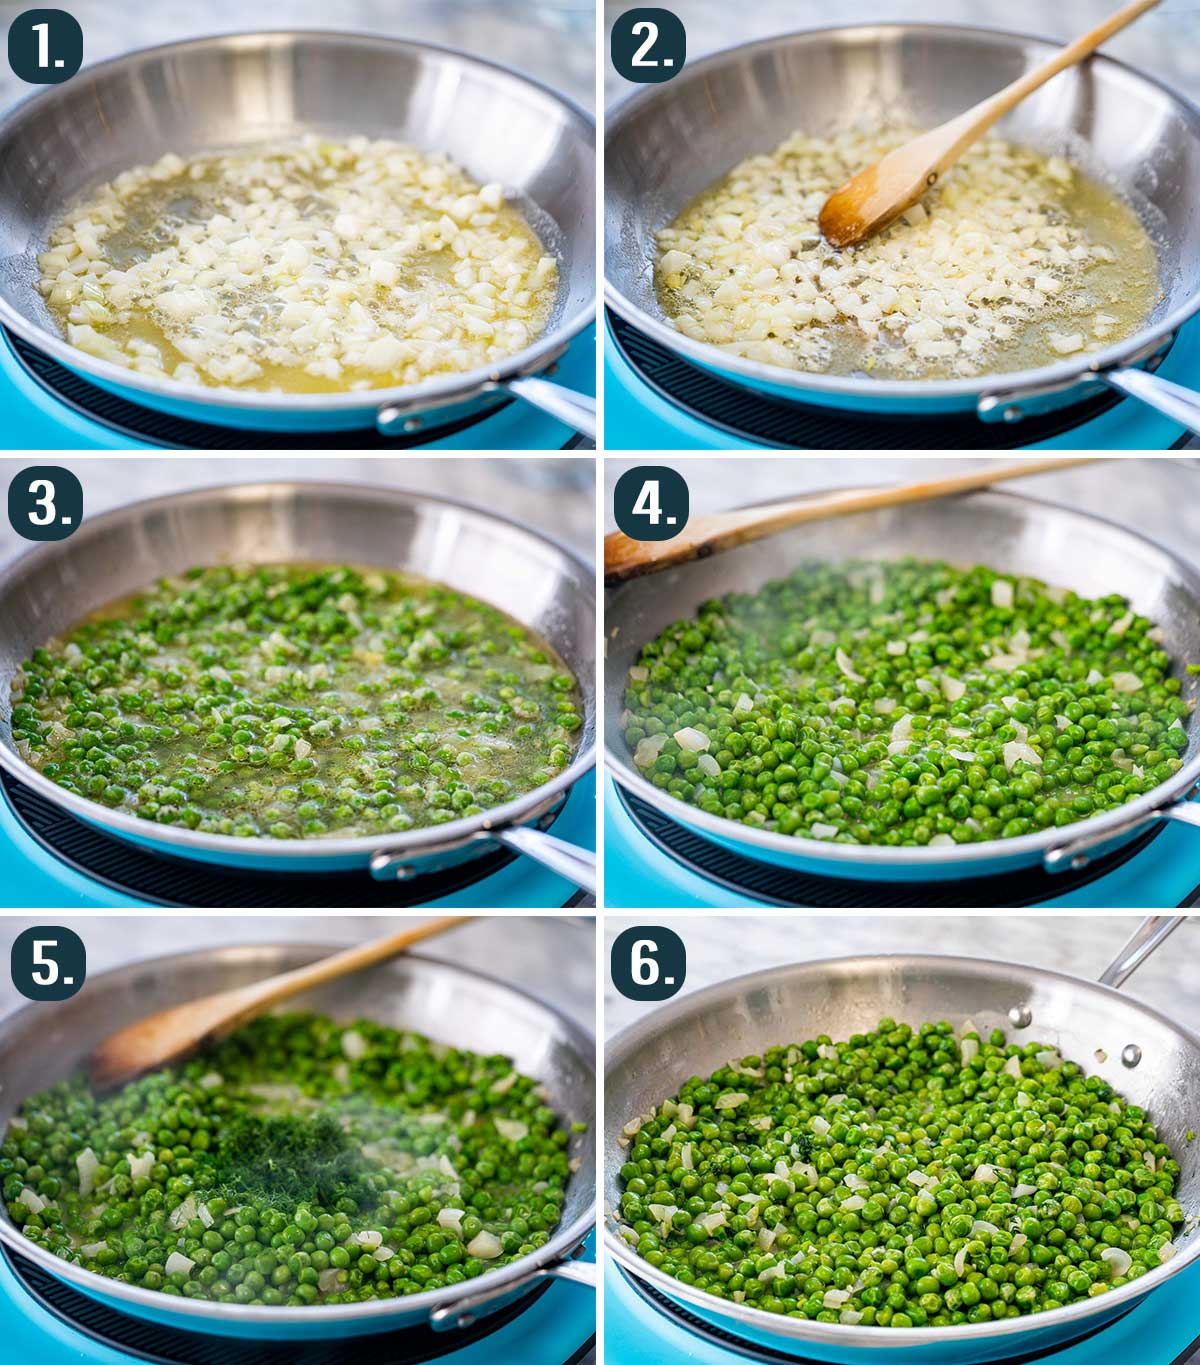 process shots showing how to make sautéed peas.0217